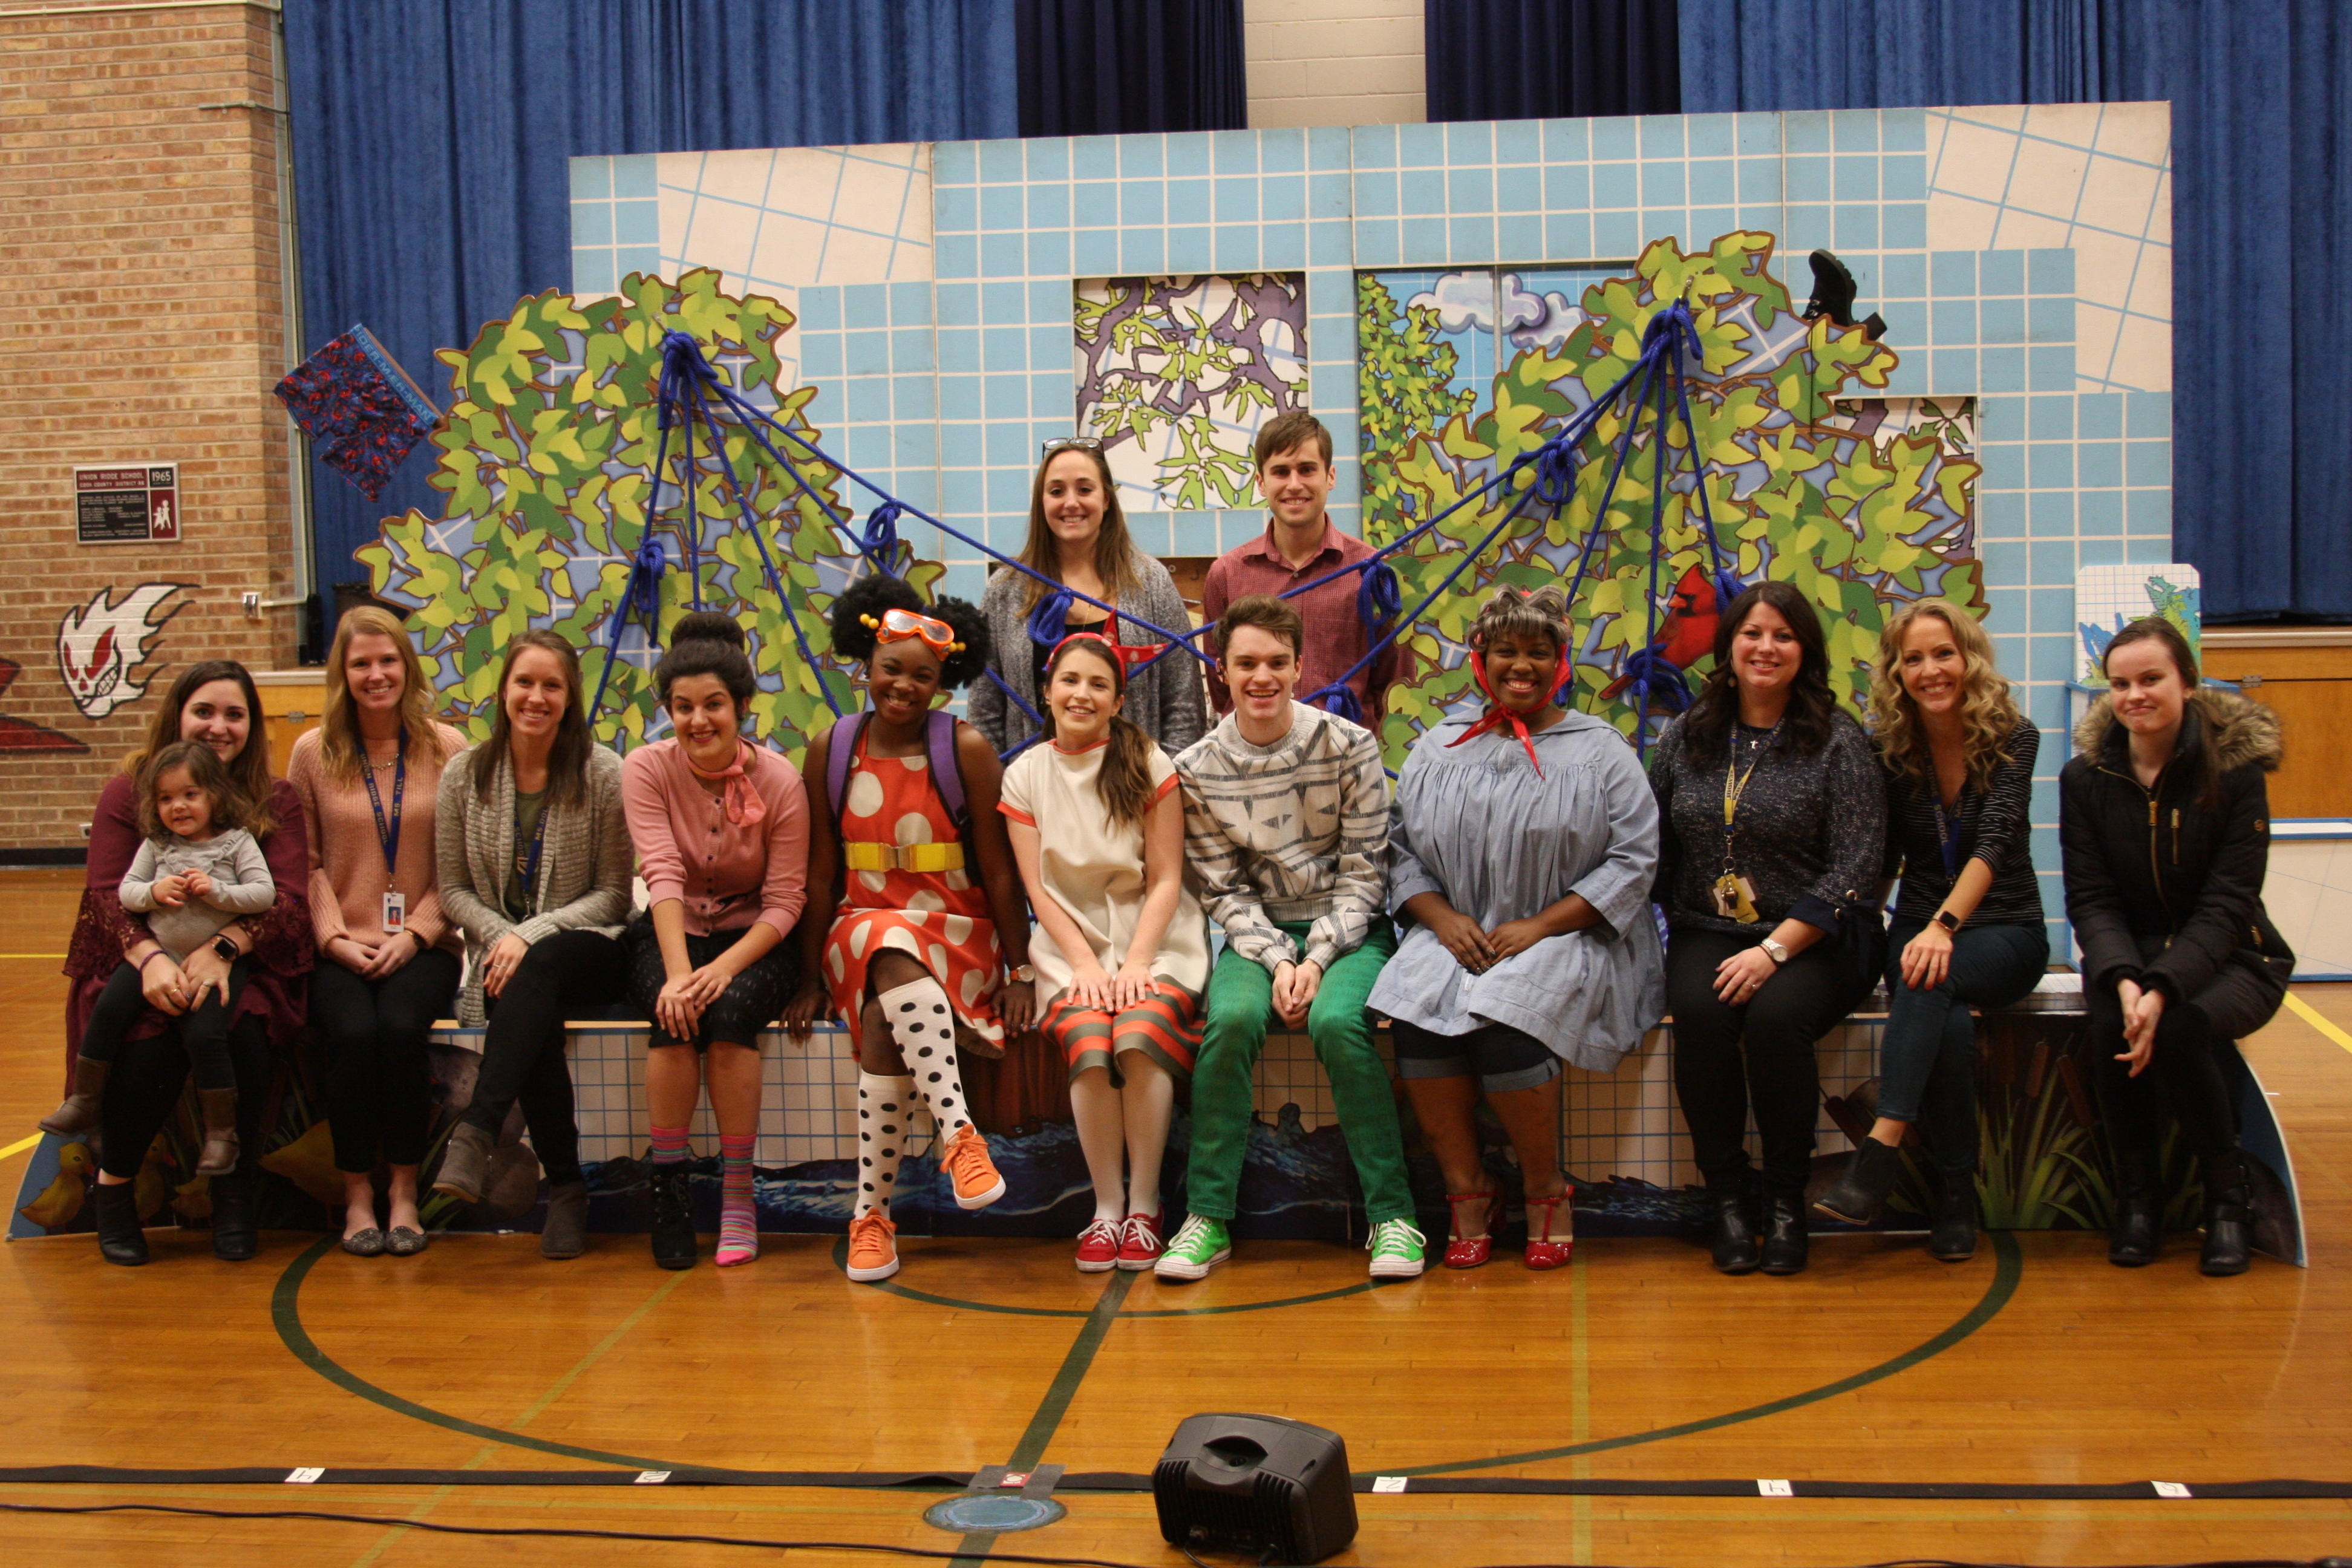 Young Author Committee and the cast of Rosie Revere posting for a group picture